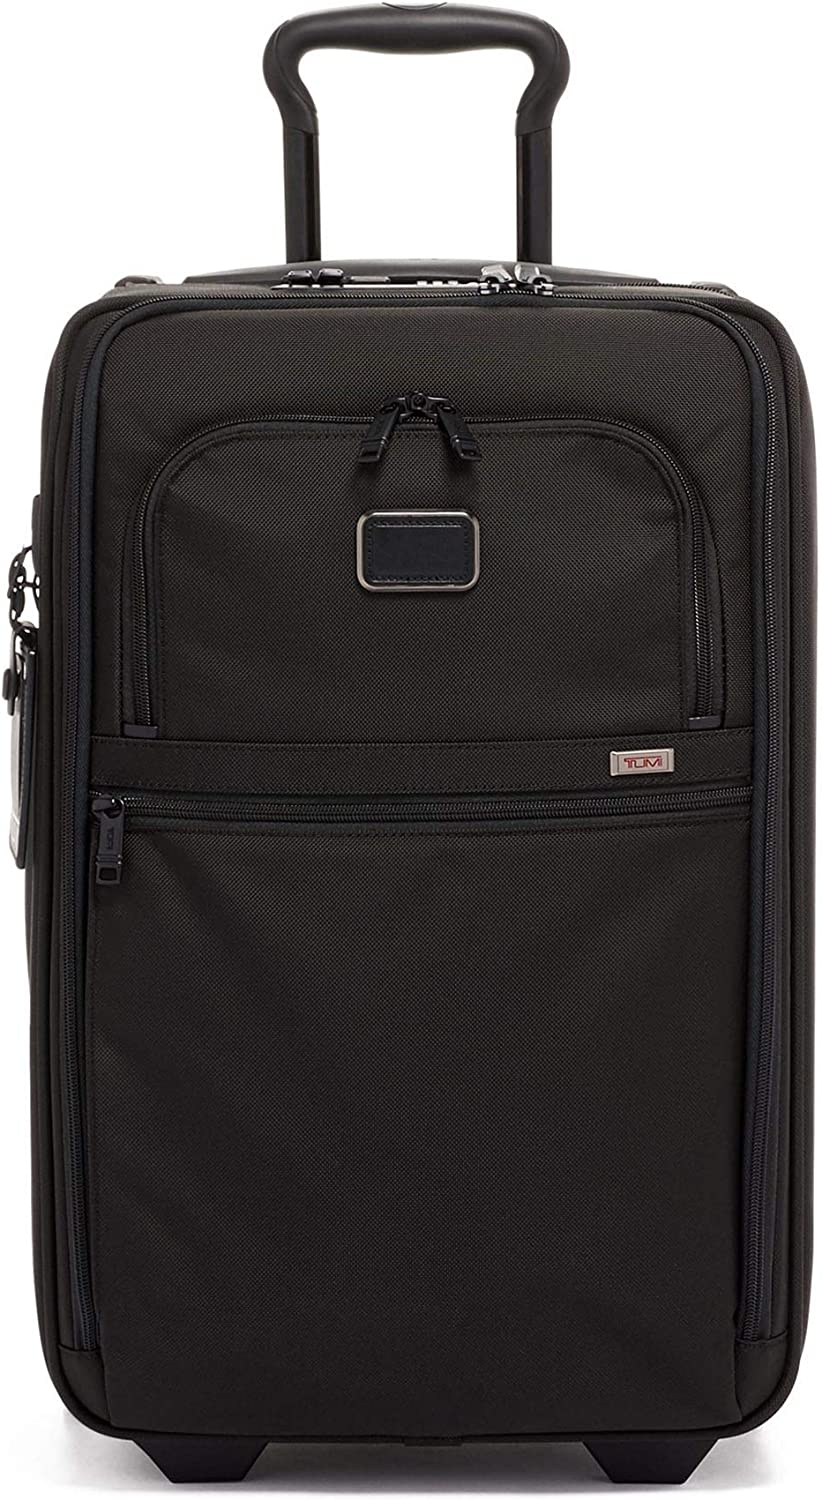 TUMI - Alpha 3 International Expandable 2 Wheeled Carry-on Luggage - 22 Inch Rolling Suitcase for Men and Women - Black